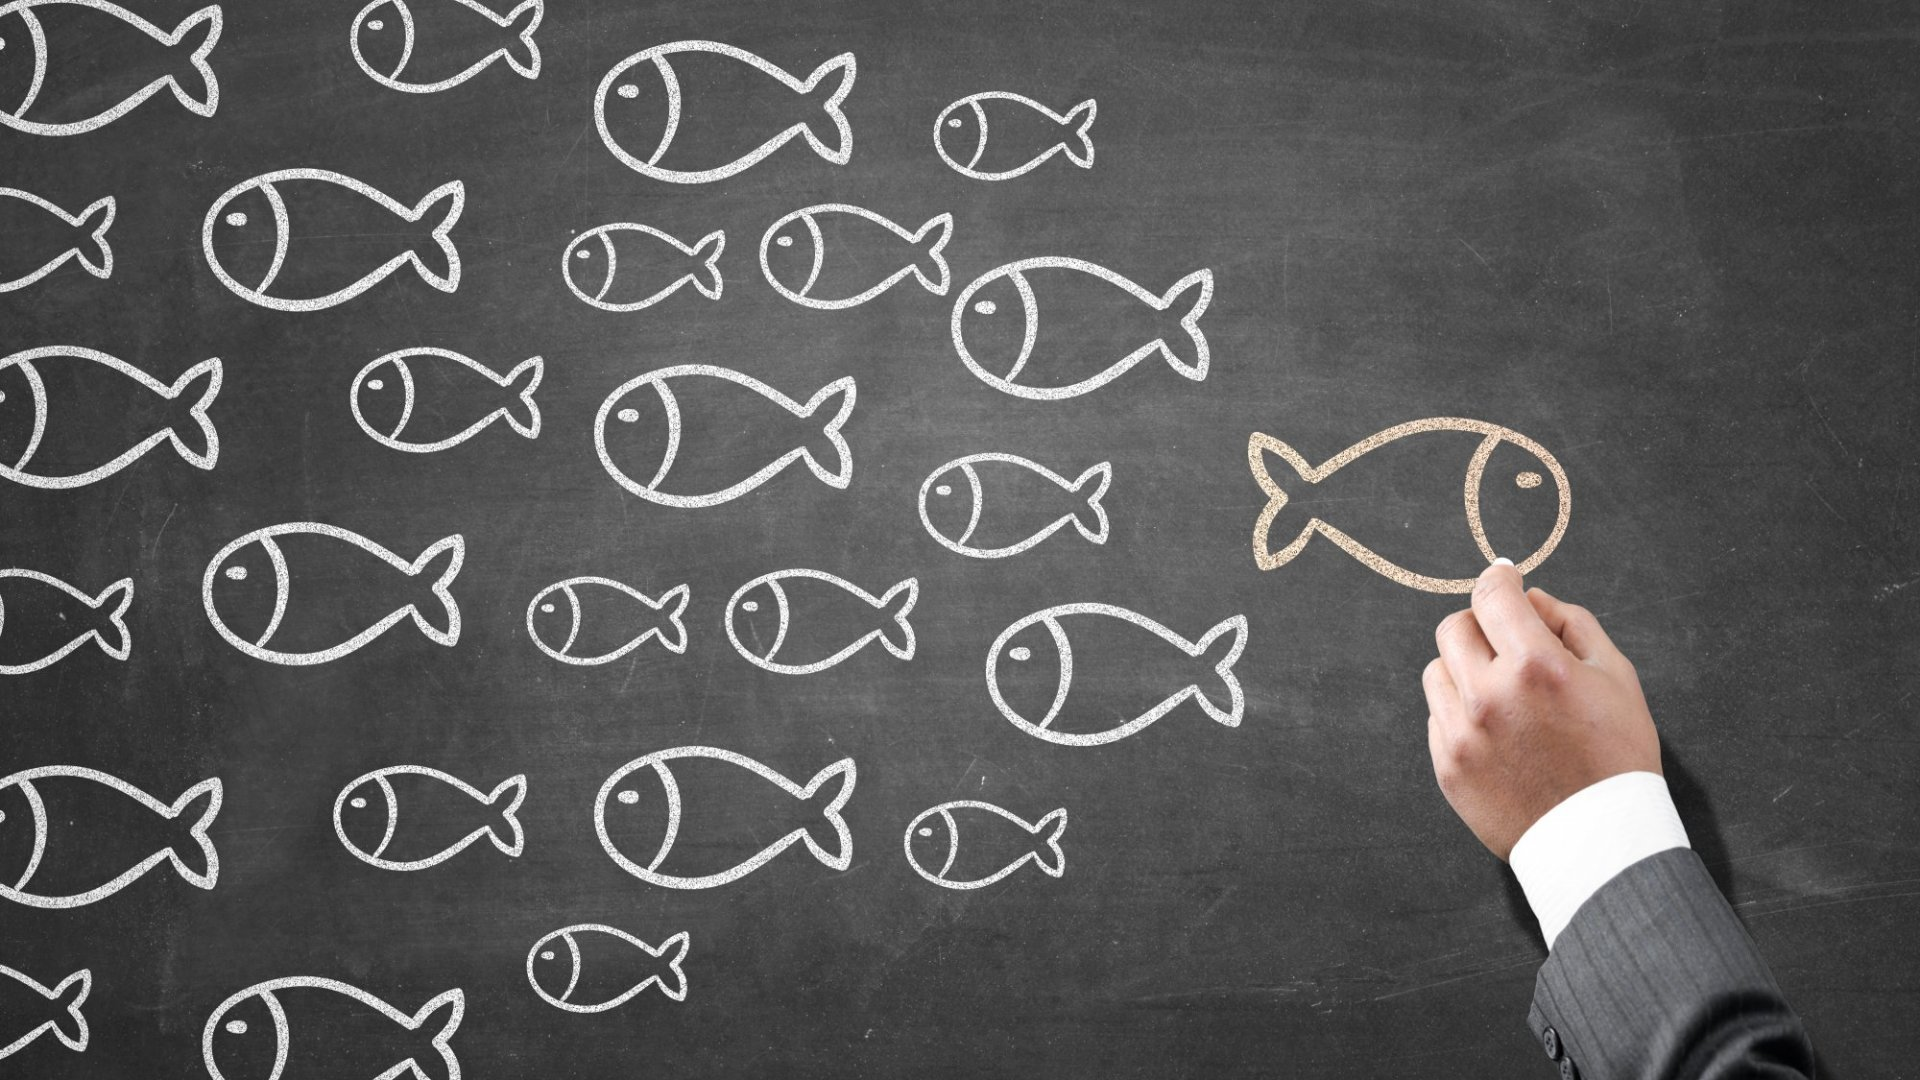 How Do You Know Someone Has True Leadership Skills? Look for This 1 Rare Habit